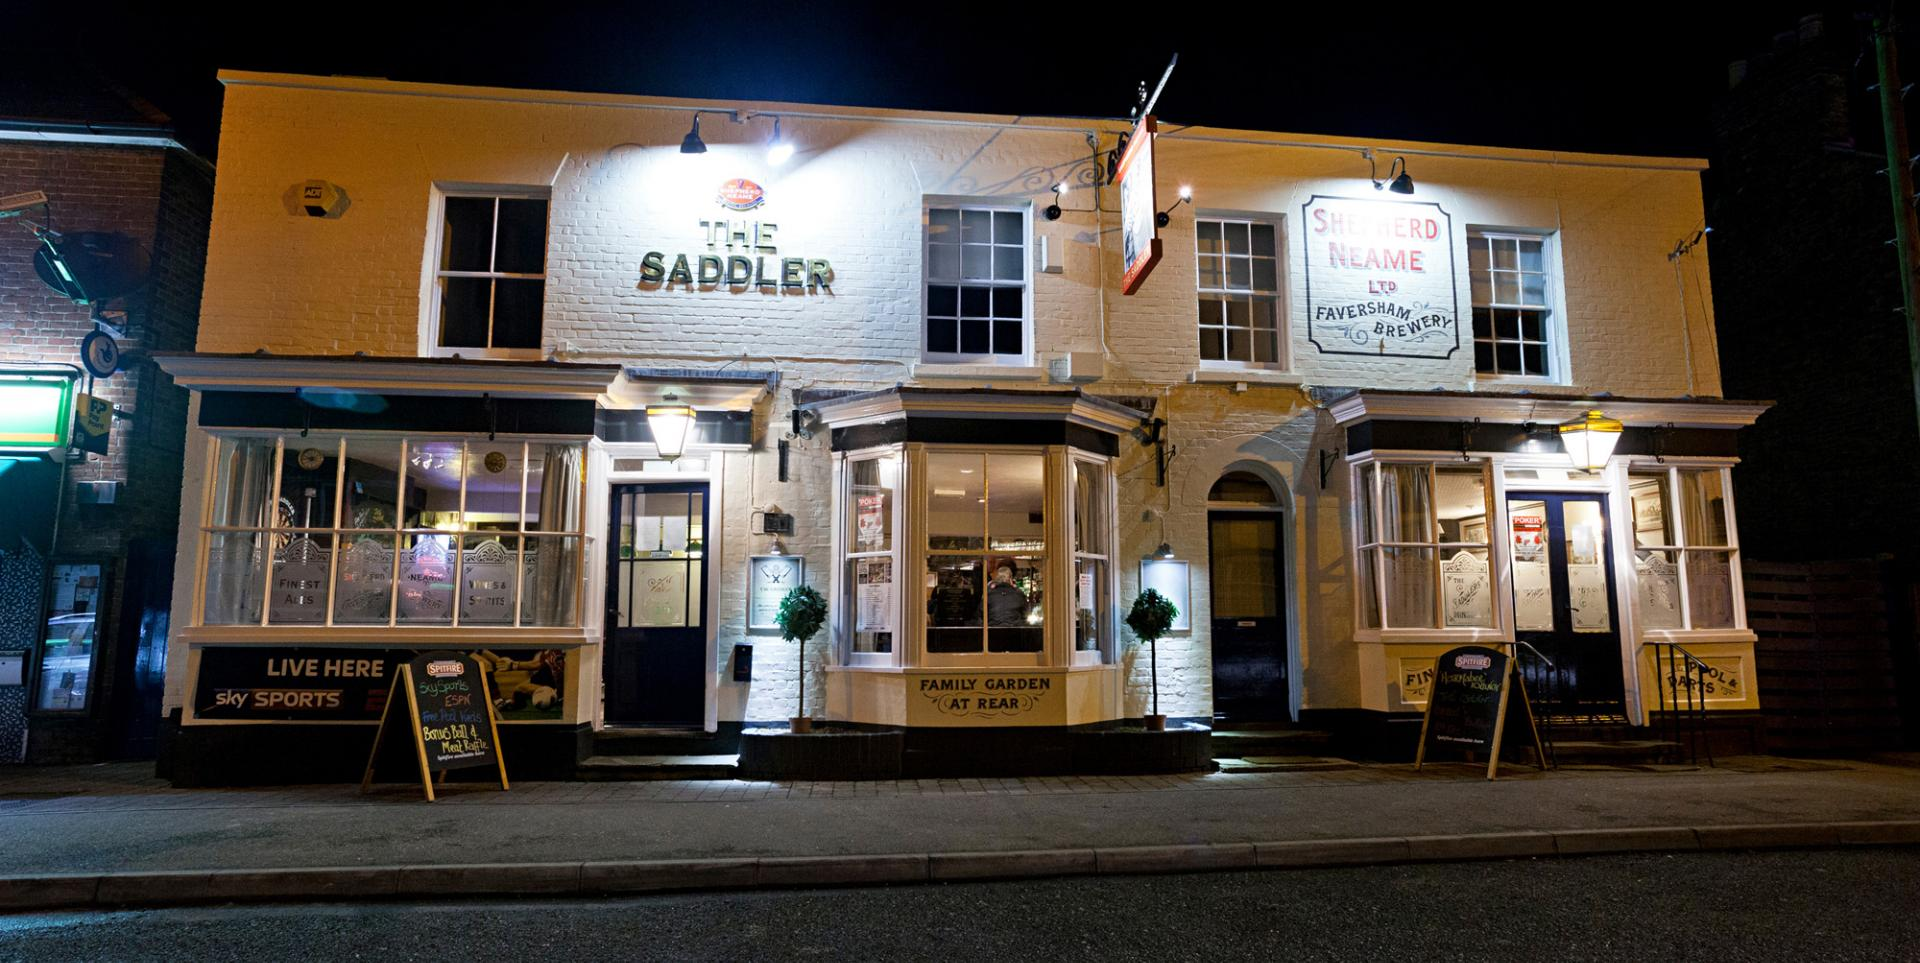 The Saddler, Minster, Ramsgate